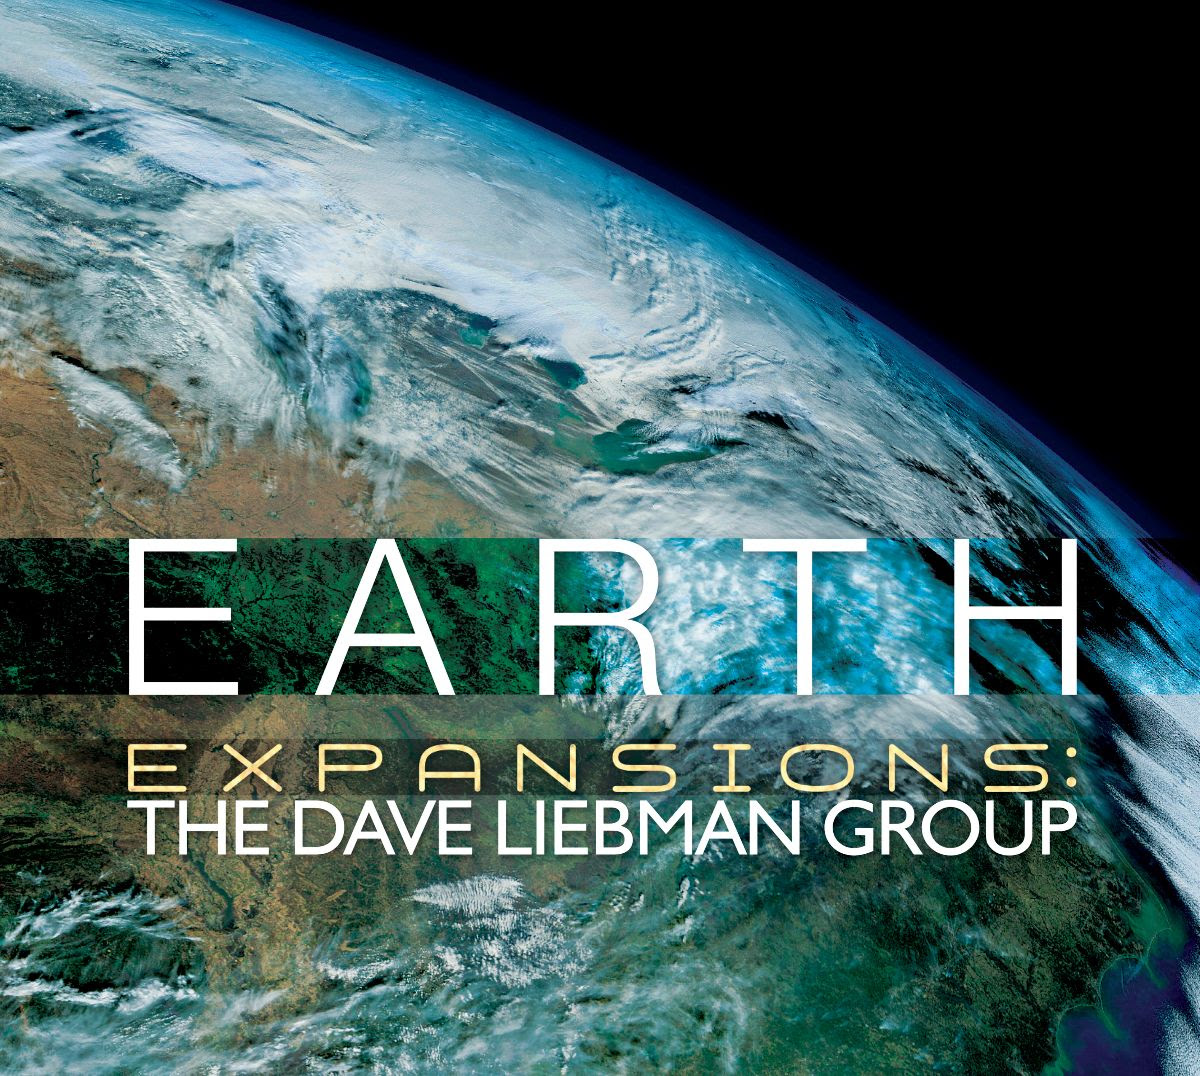 REVIEW: EARTH by Dave Liebman's Expansions Reviewed by Jazz Views